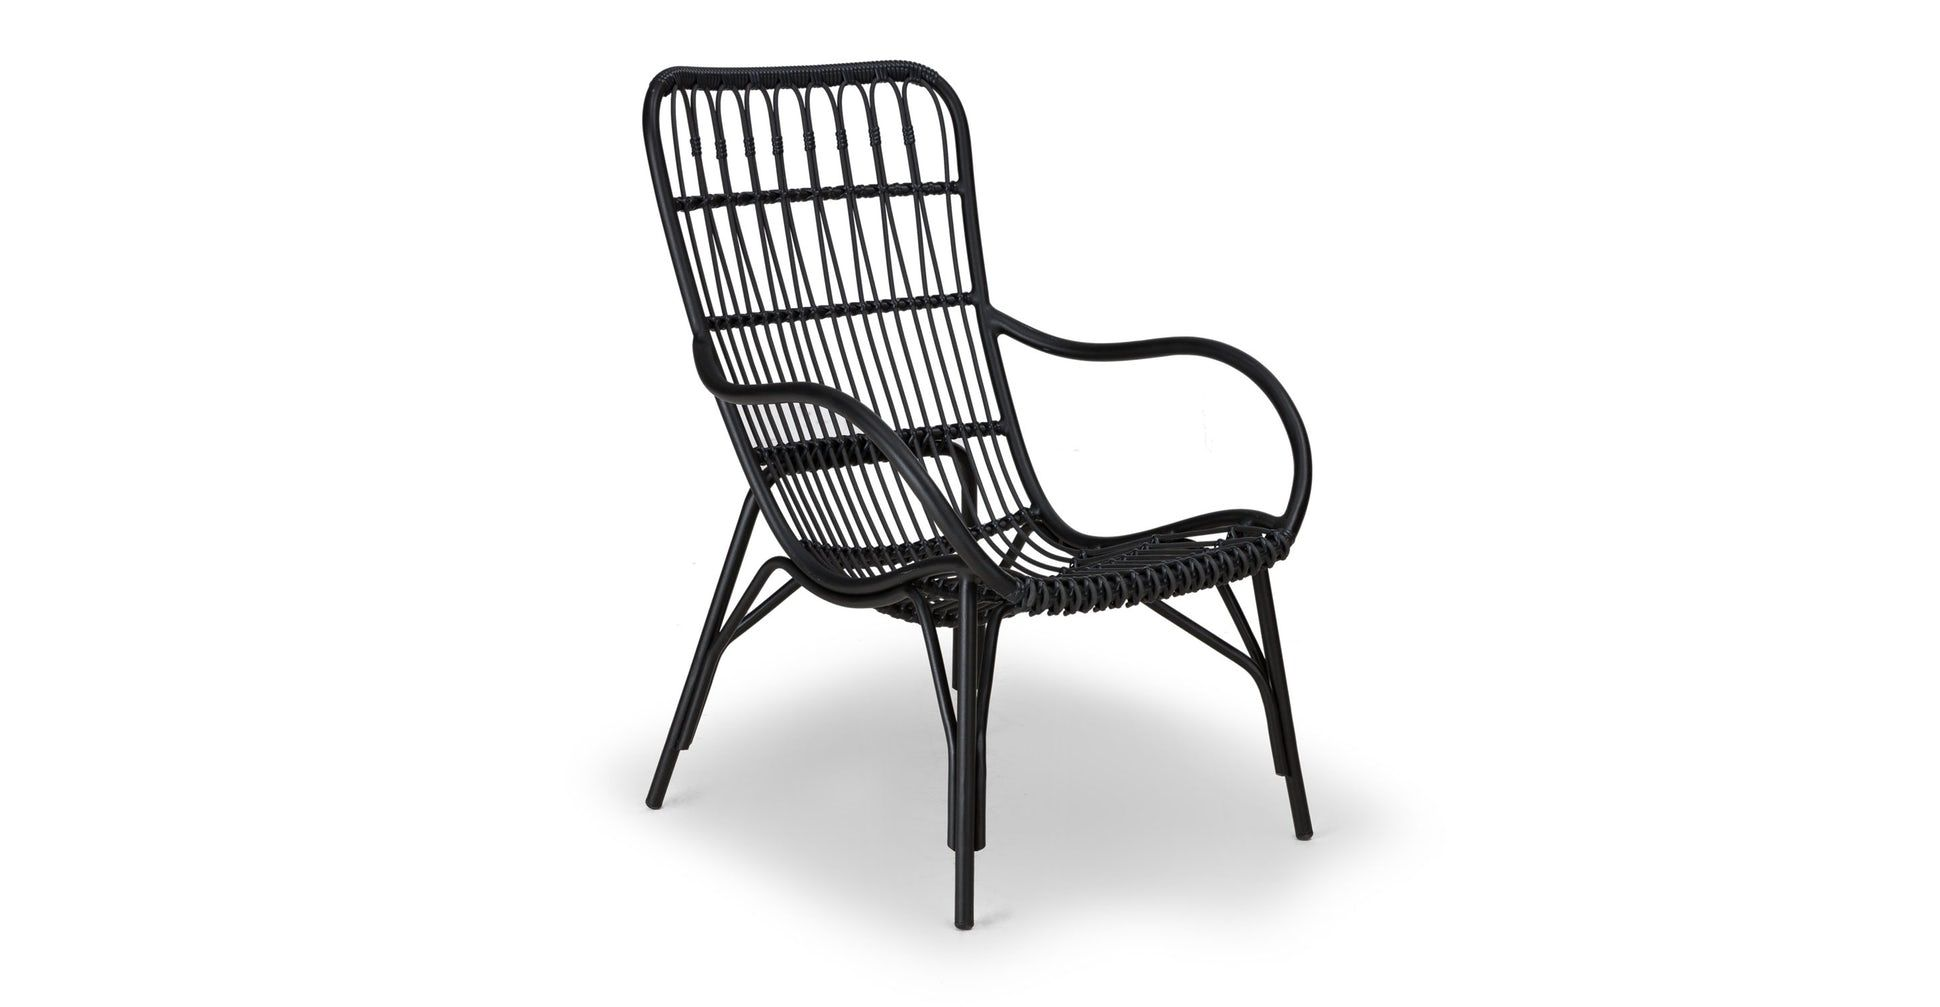 Medan Graphite Lounge Chair in 2020 Lounge chair outdoor